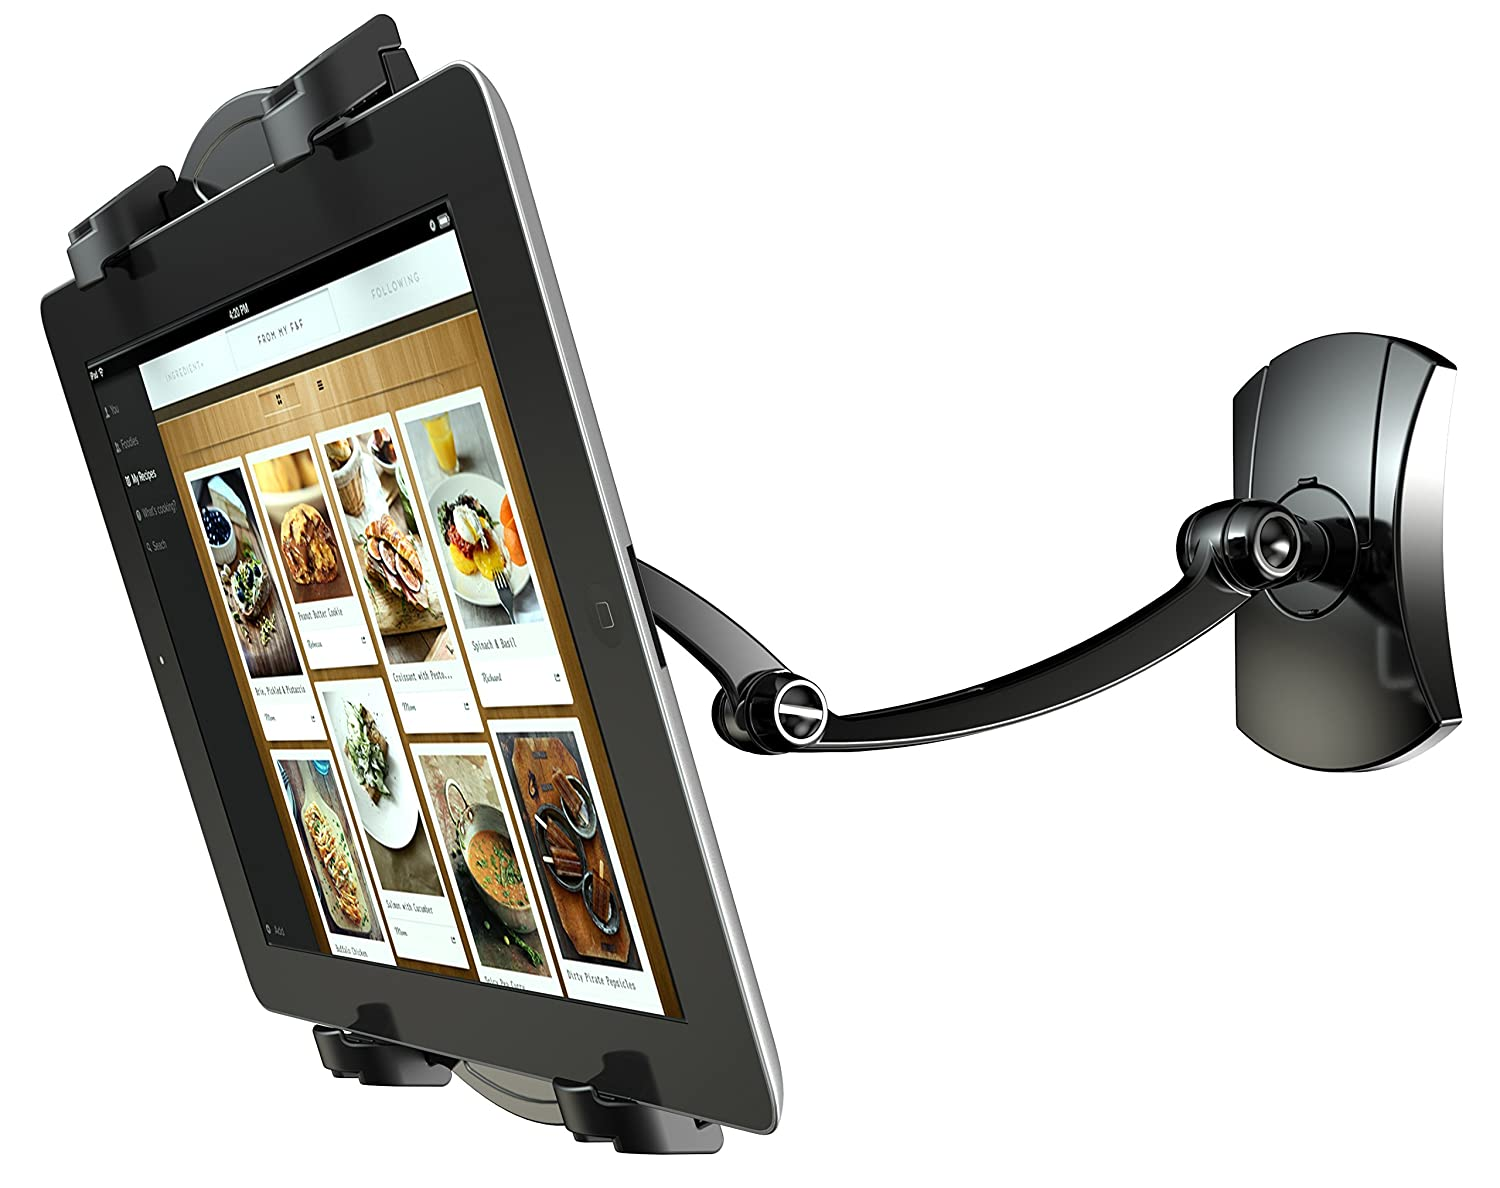 Amazon.com: 2-In-1 Tablet holder Kitchen Mount Wall Stand for 7-12 ...